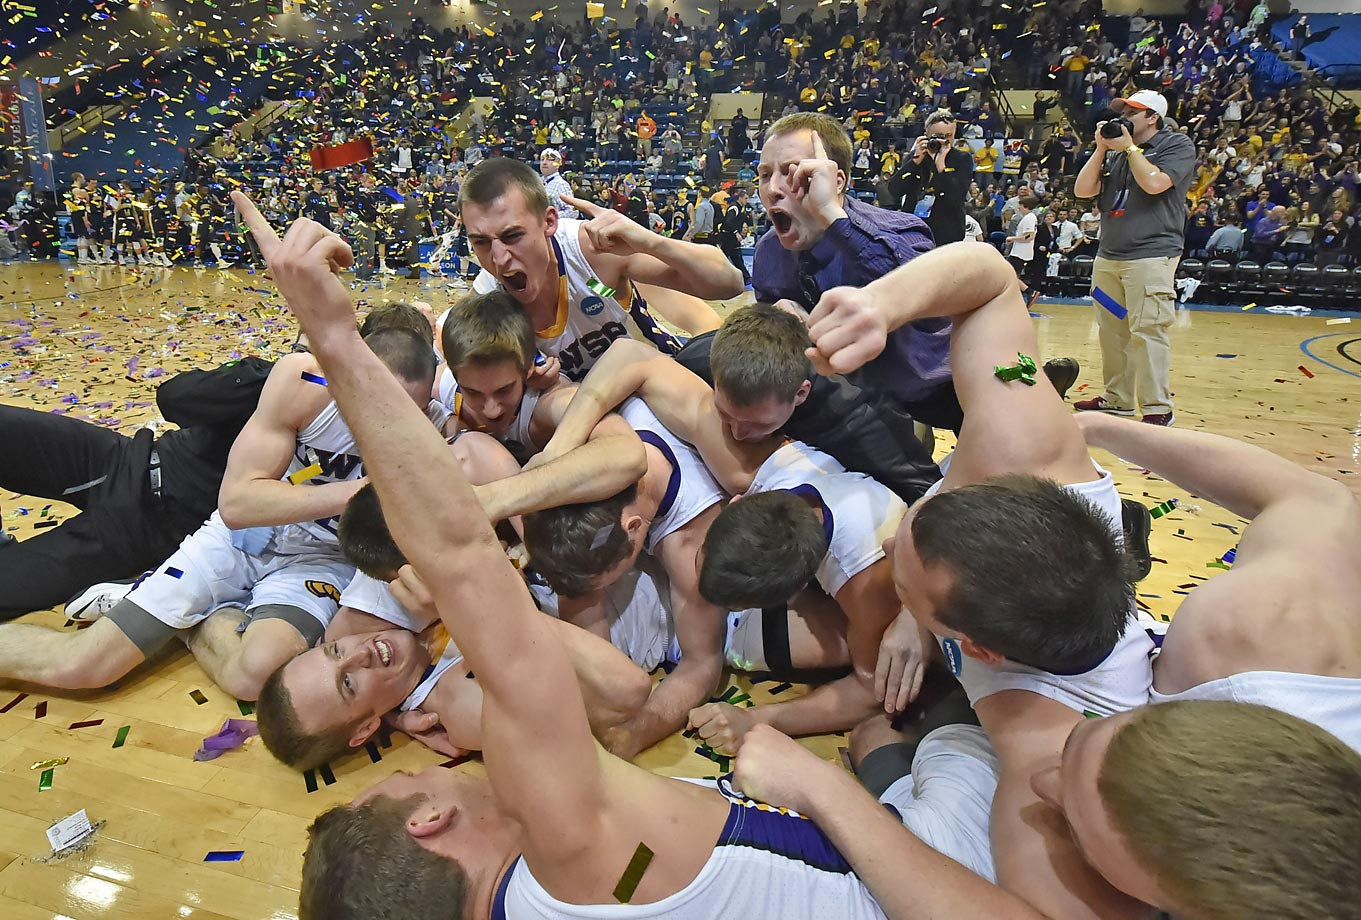 Wisconsin-Stevens Point players celebrate after defeating Augustana in a NCAA Division III college basketball championship game.